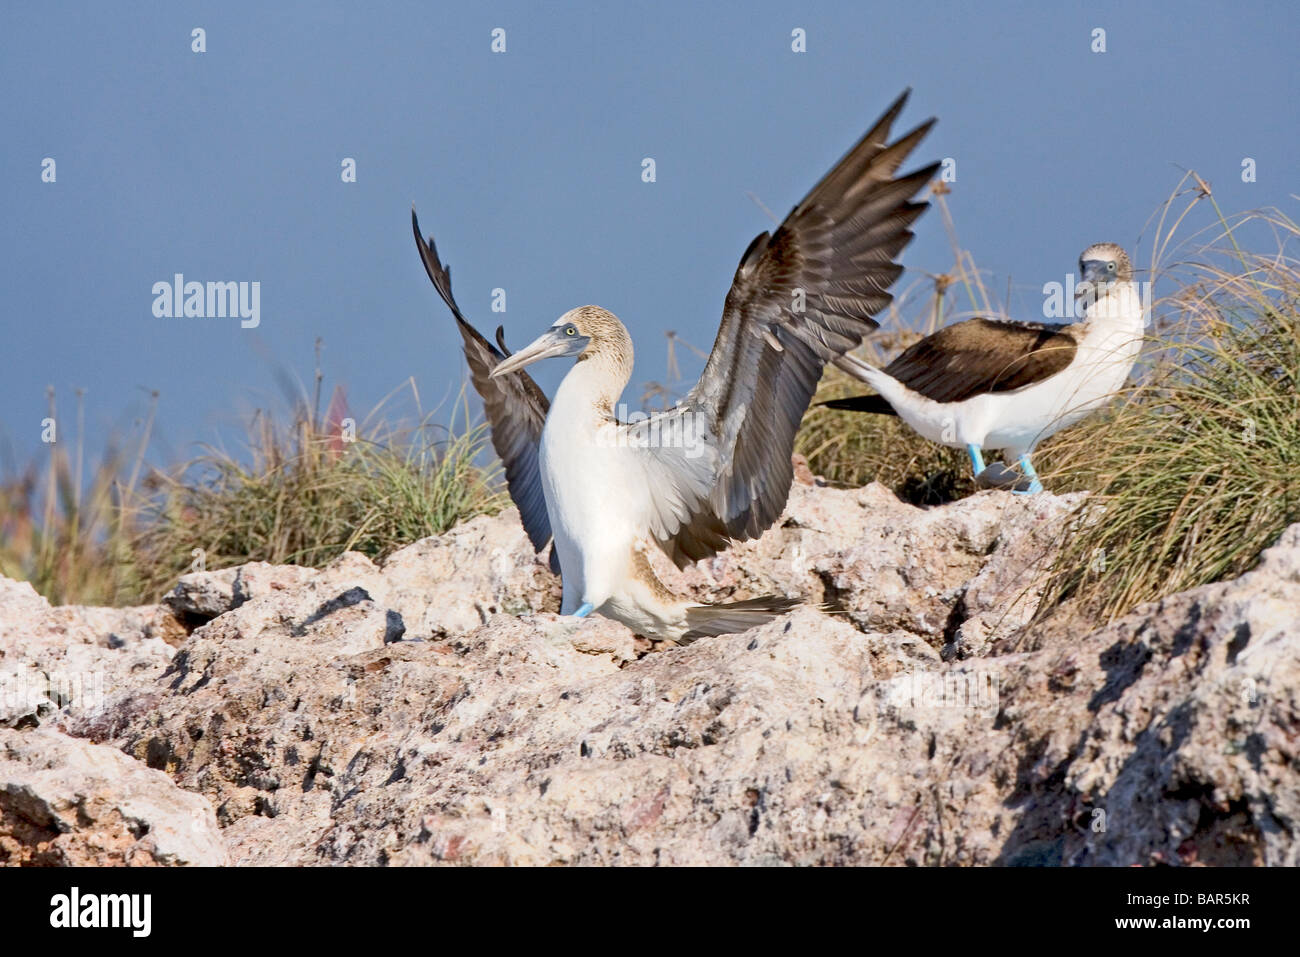 Adult Blue-footed Booby lands on rock with wings spread. - Stock Image